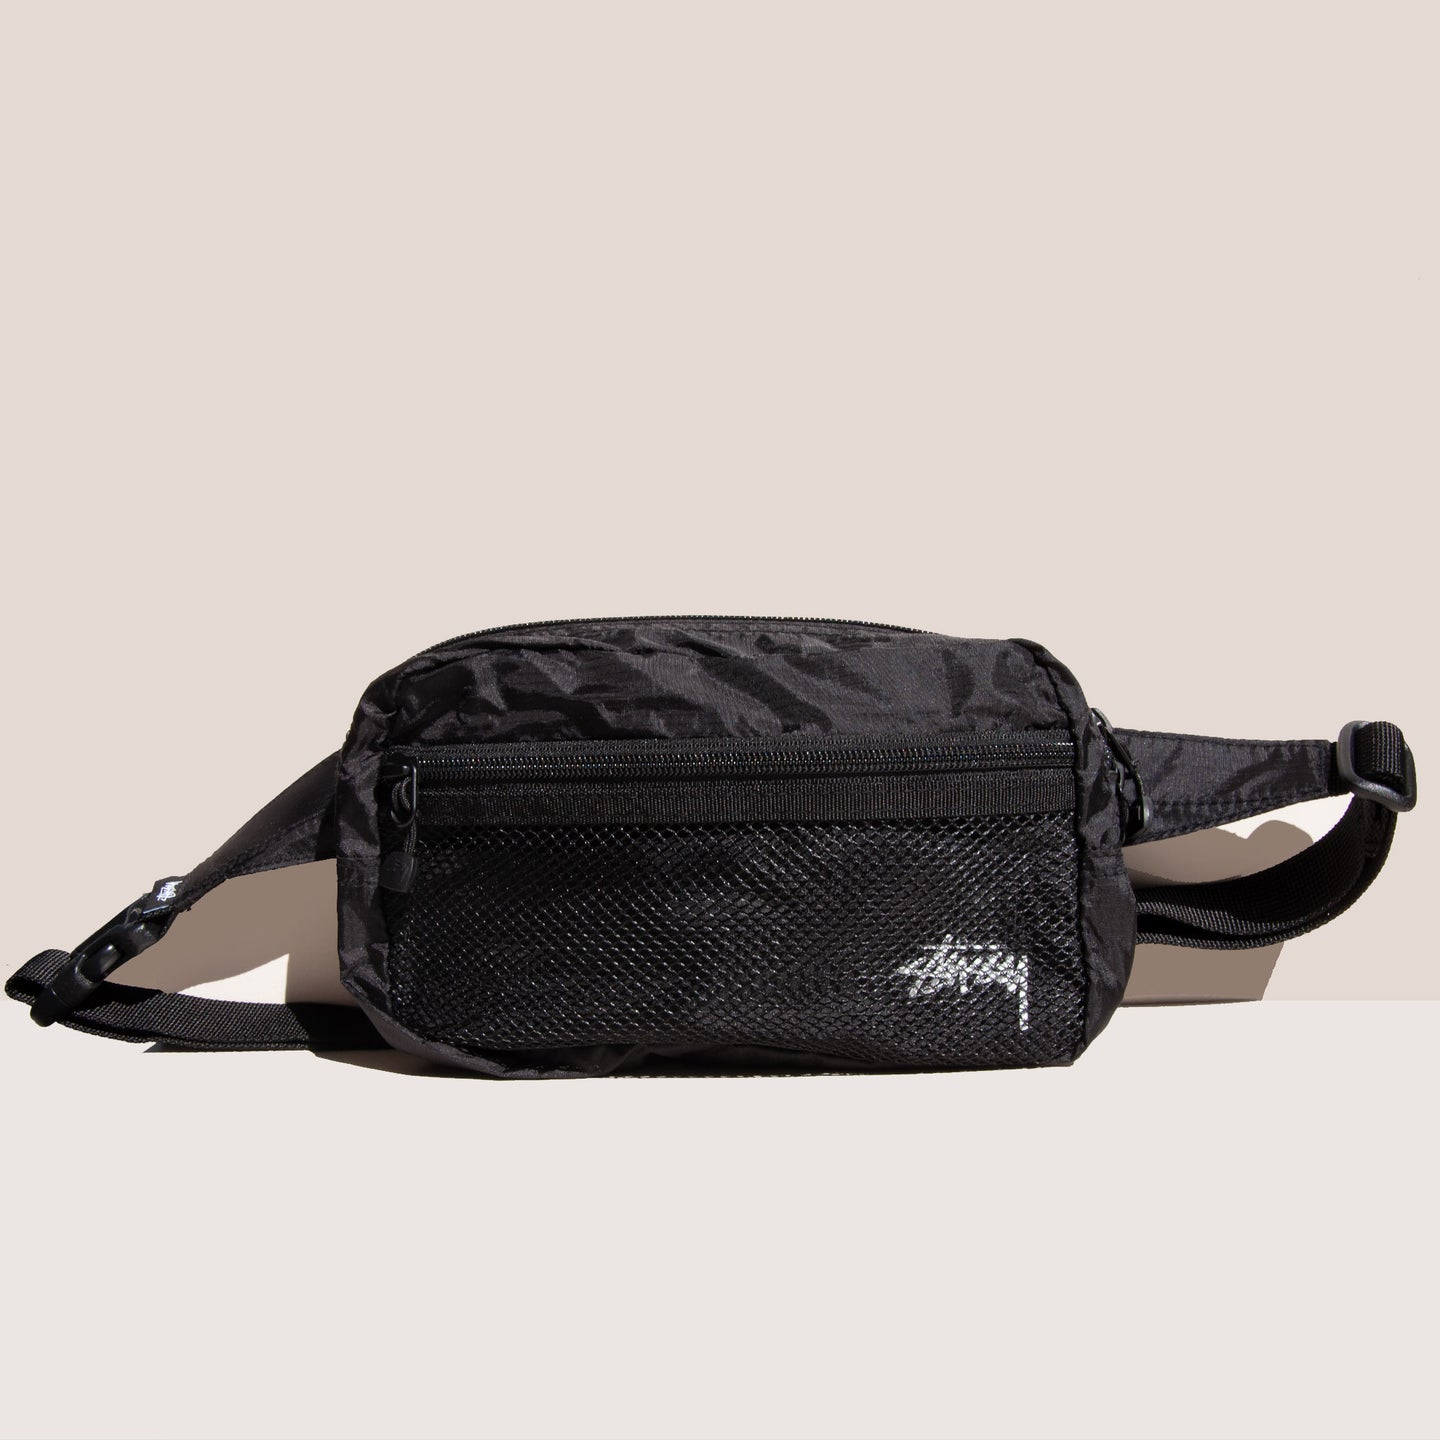 Stussy - Light Weight Waist Bag, available at LCD.